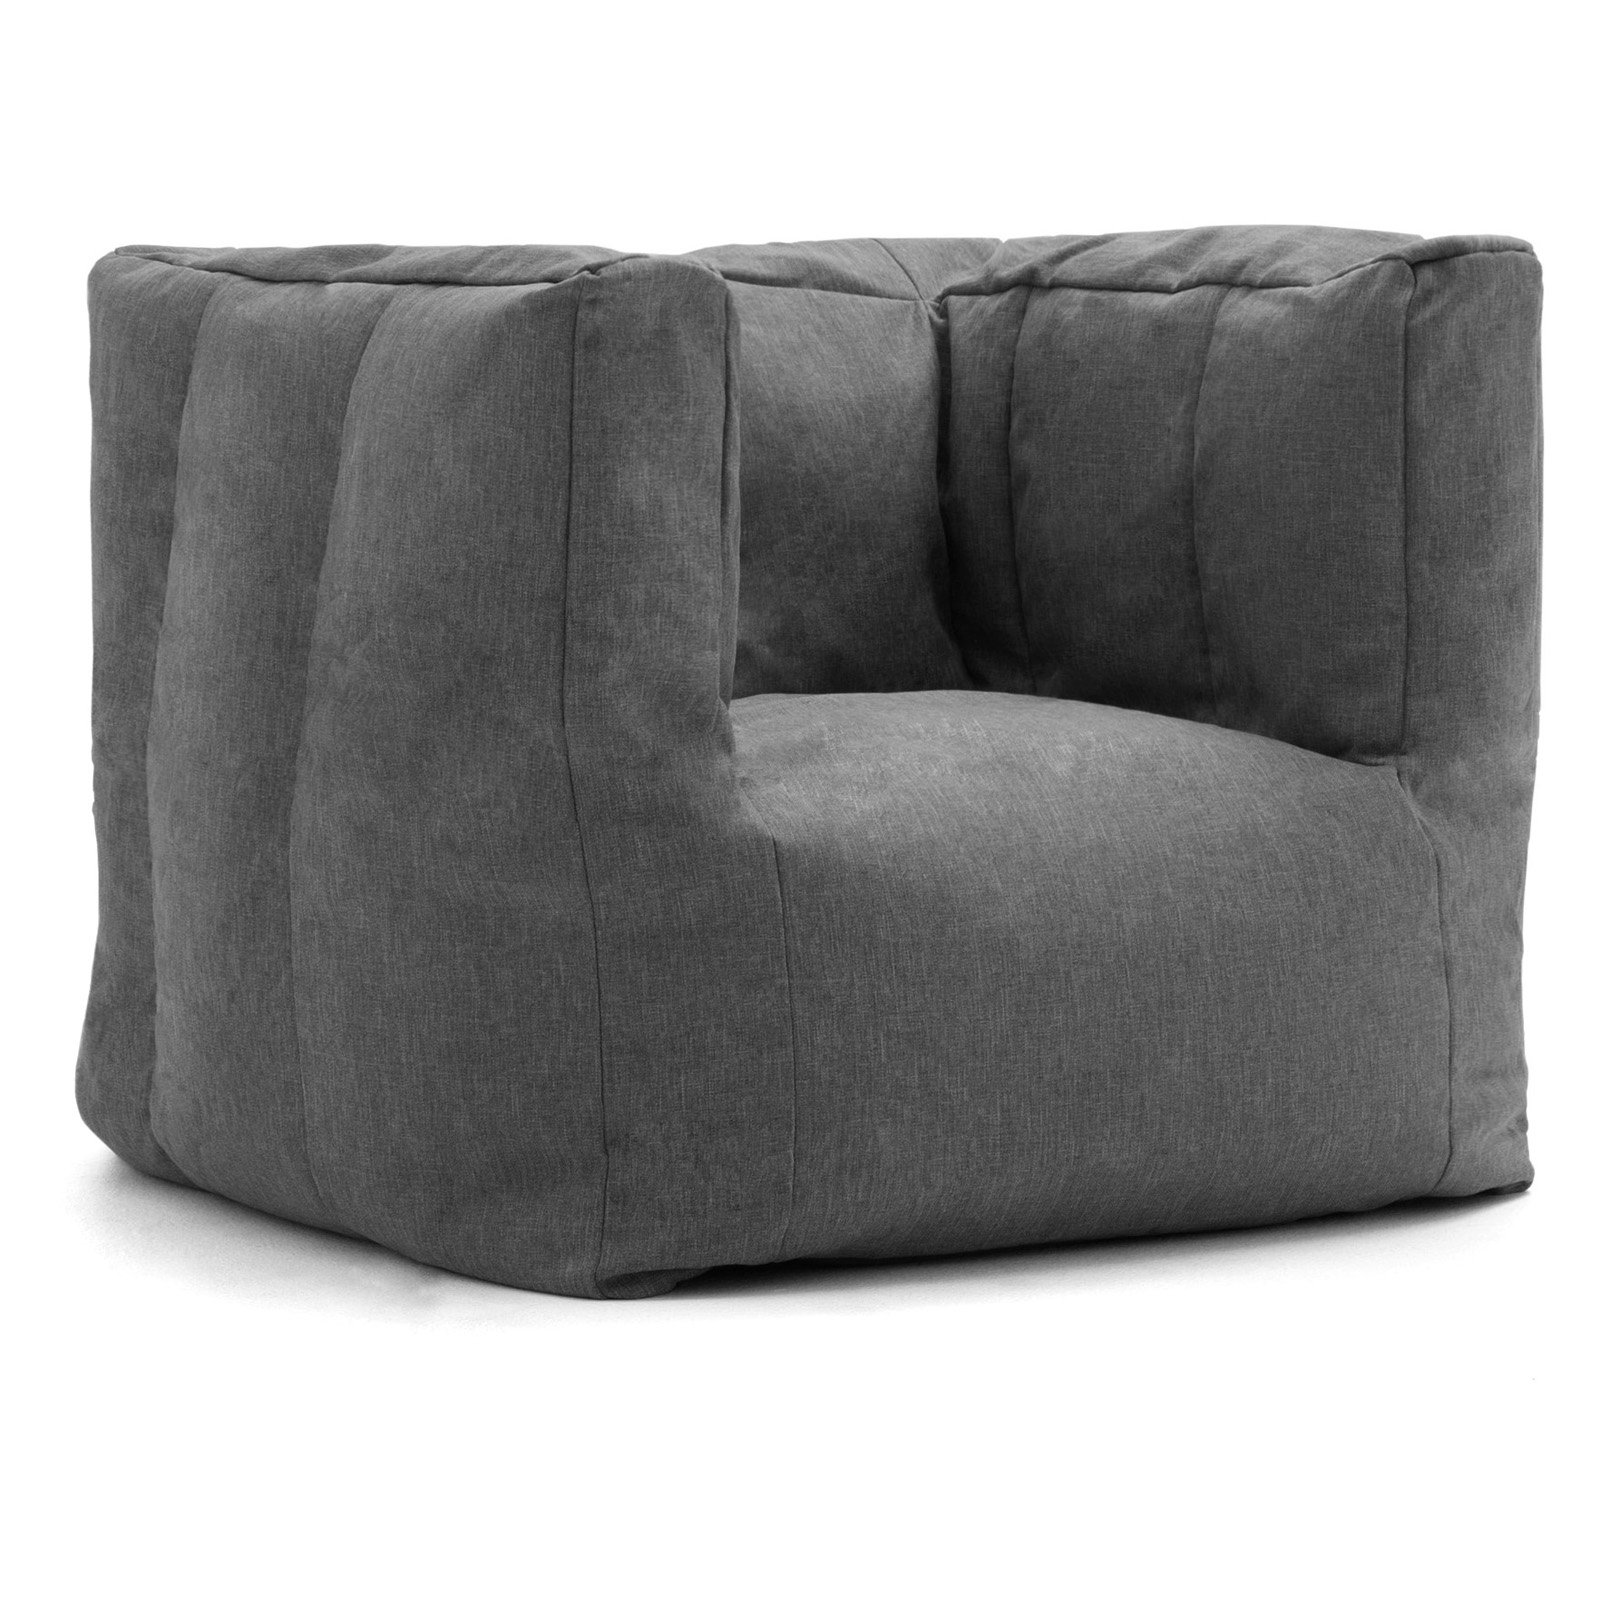 Lux by Big Joe Cube Union Bean Bag